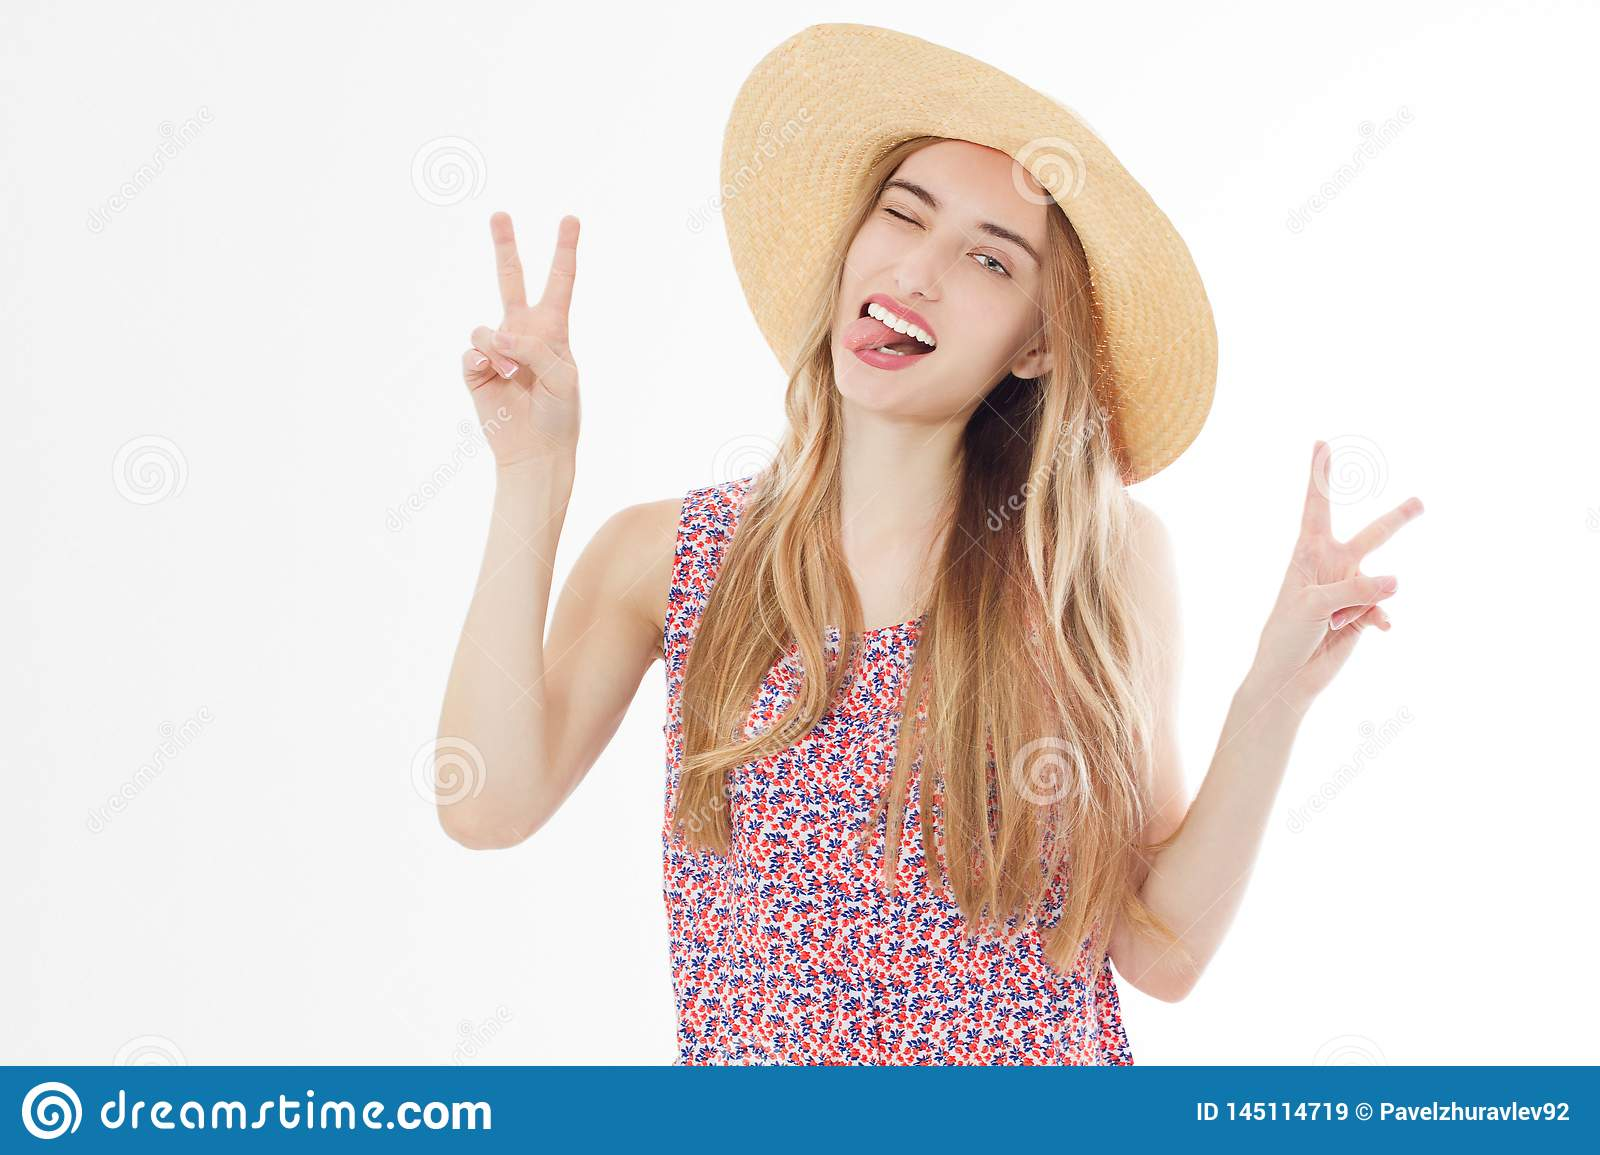 Beautiful woman with hat smiling on a background of white show victory signs and tongue